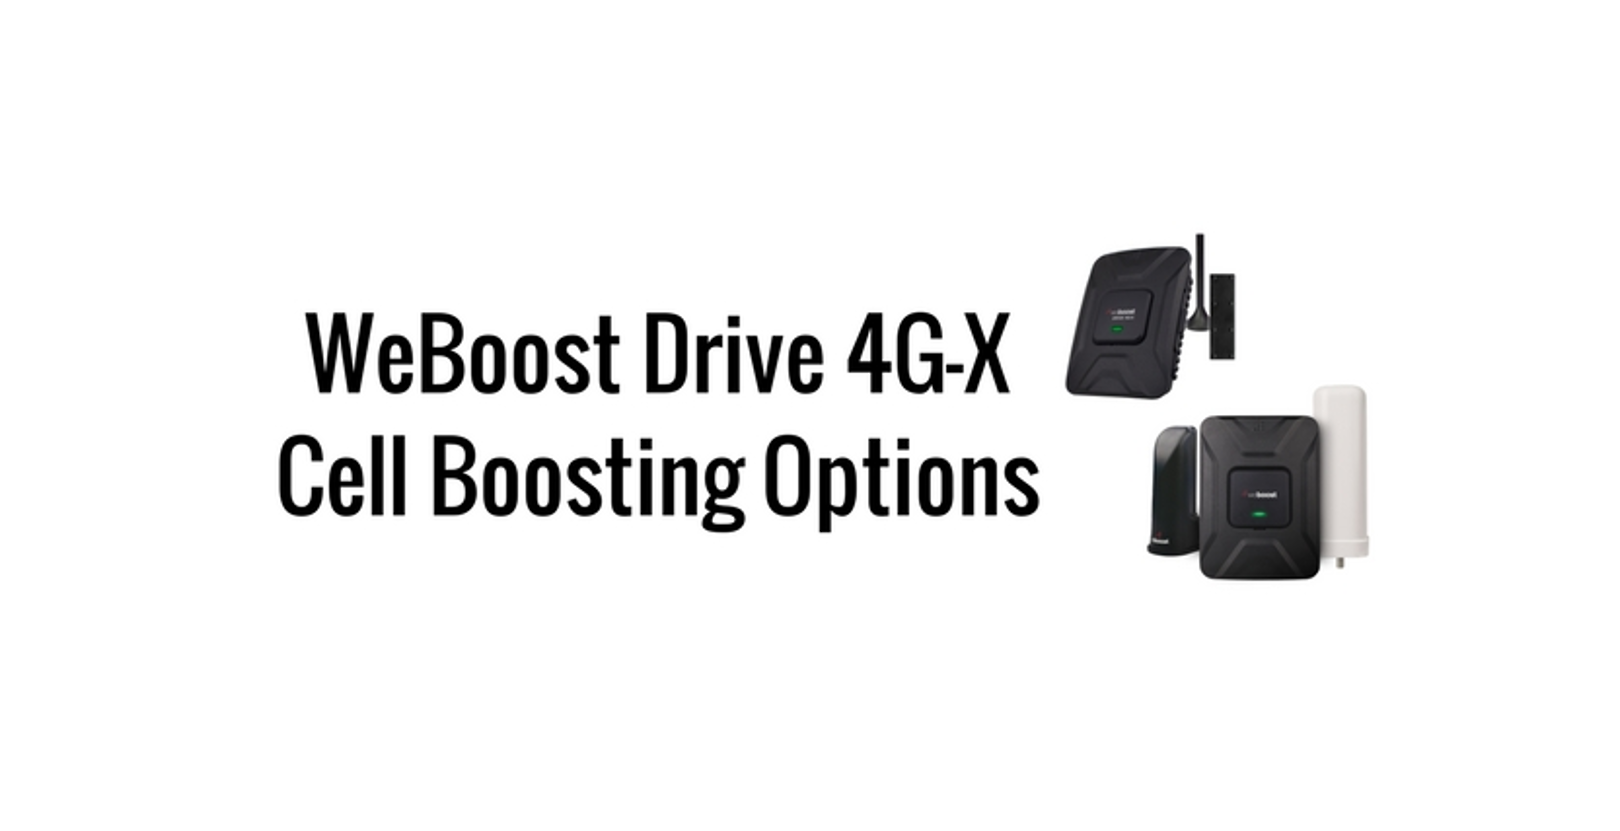 The weBoost 4G-X Cell Boosting Options: 4G-X, 4G-X OTR, and 4G-X RV Kit